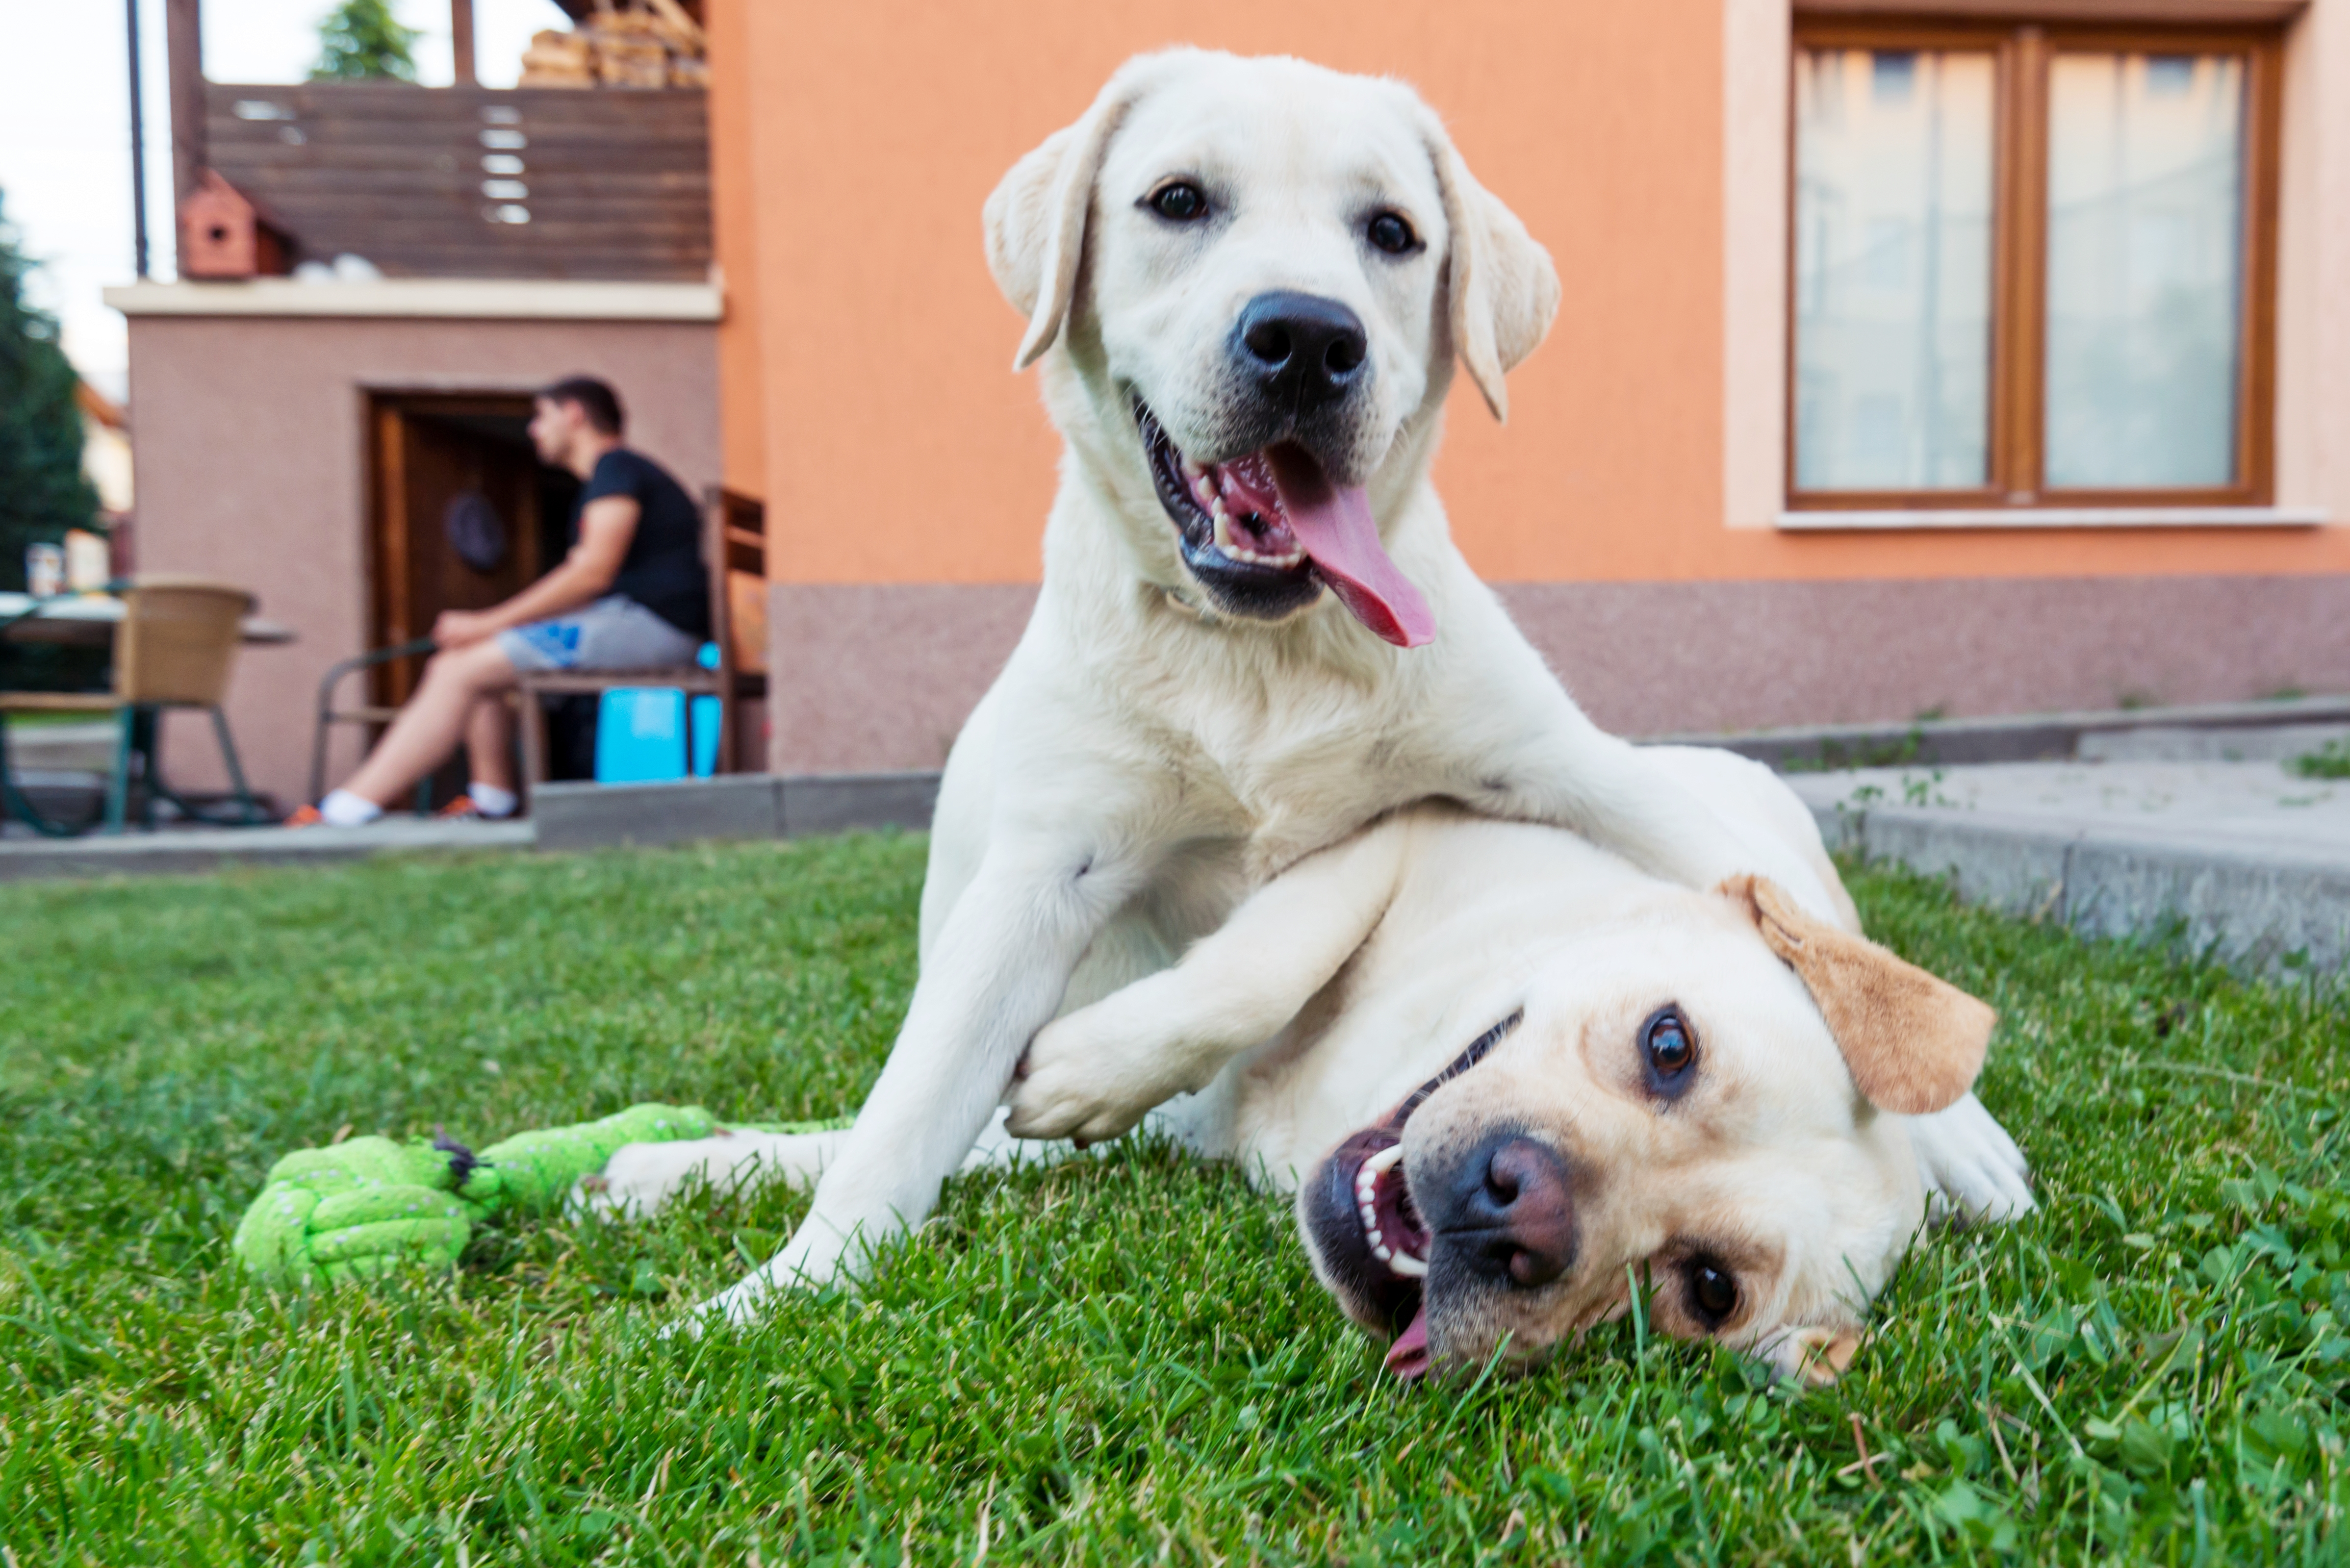 What Happens When a Mother Dog Breeds With the Son? | Cuteness